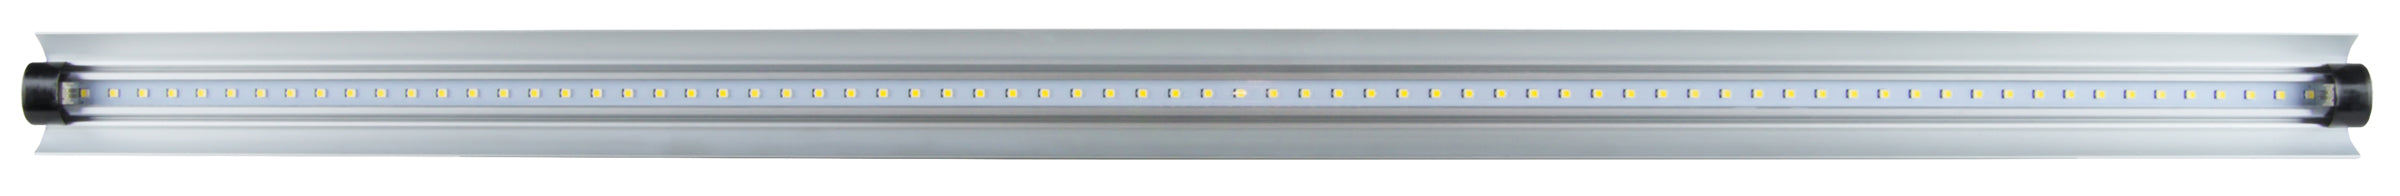 Sunblaster LED Grow Light Fixture 6400K - 3 f